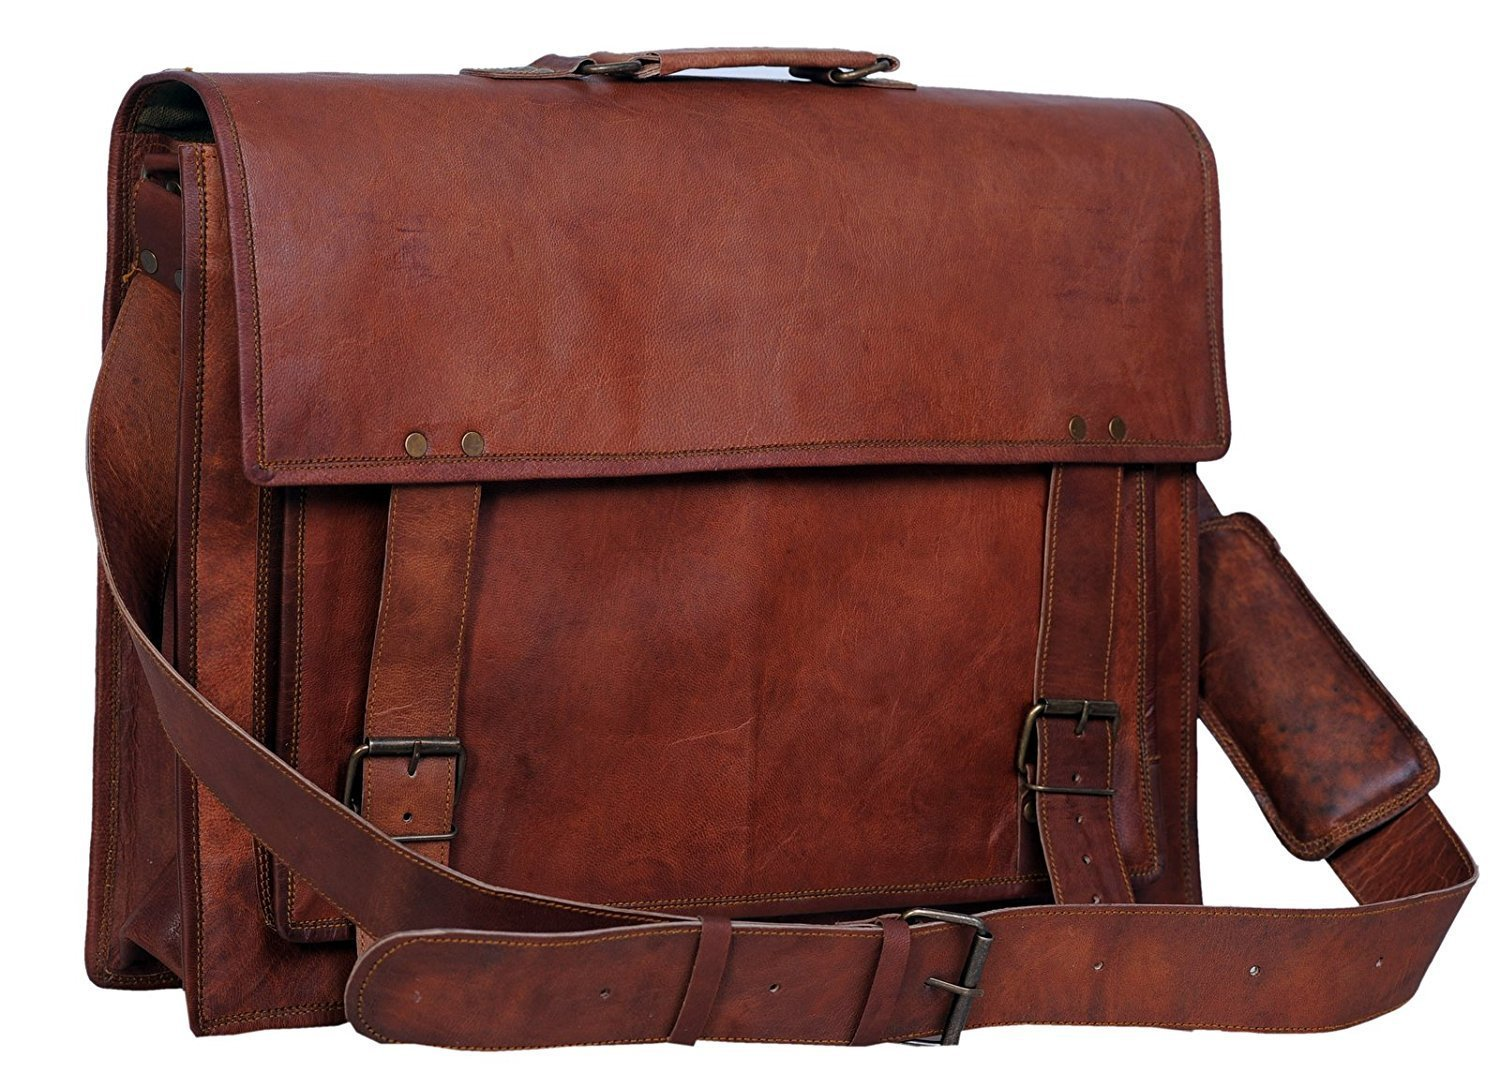 Komal's Passion Leather 18 Inch Retro Leather Briefcase Laptop Messenger Bag by Komal's Passion Leather (Image #1)